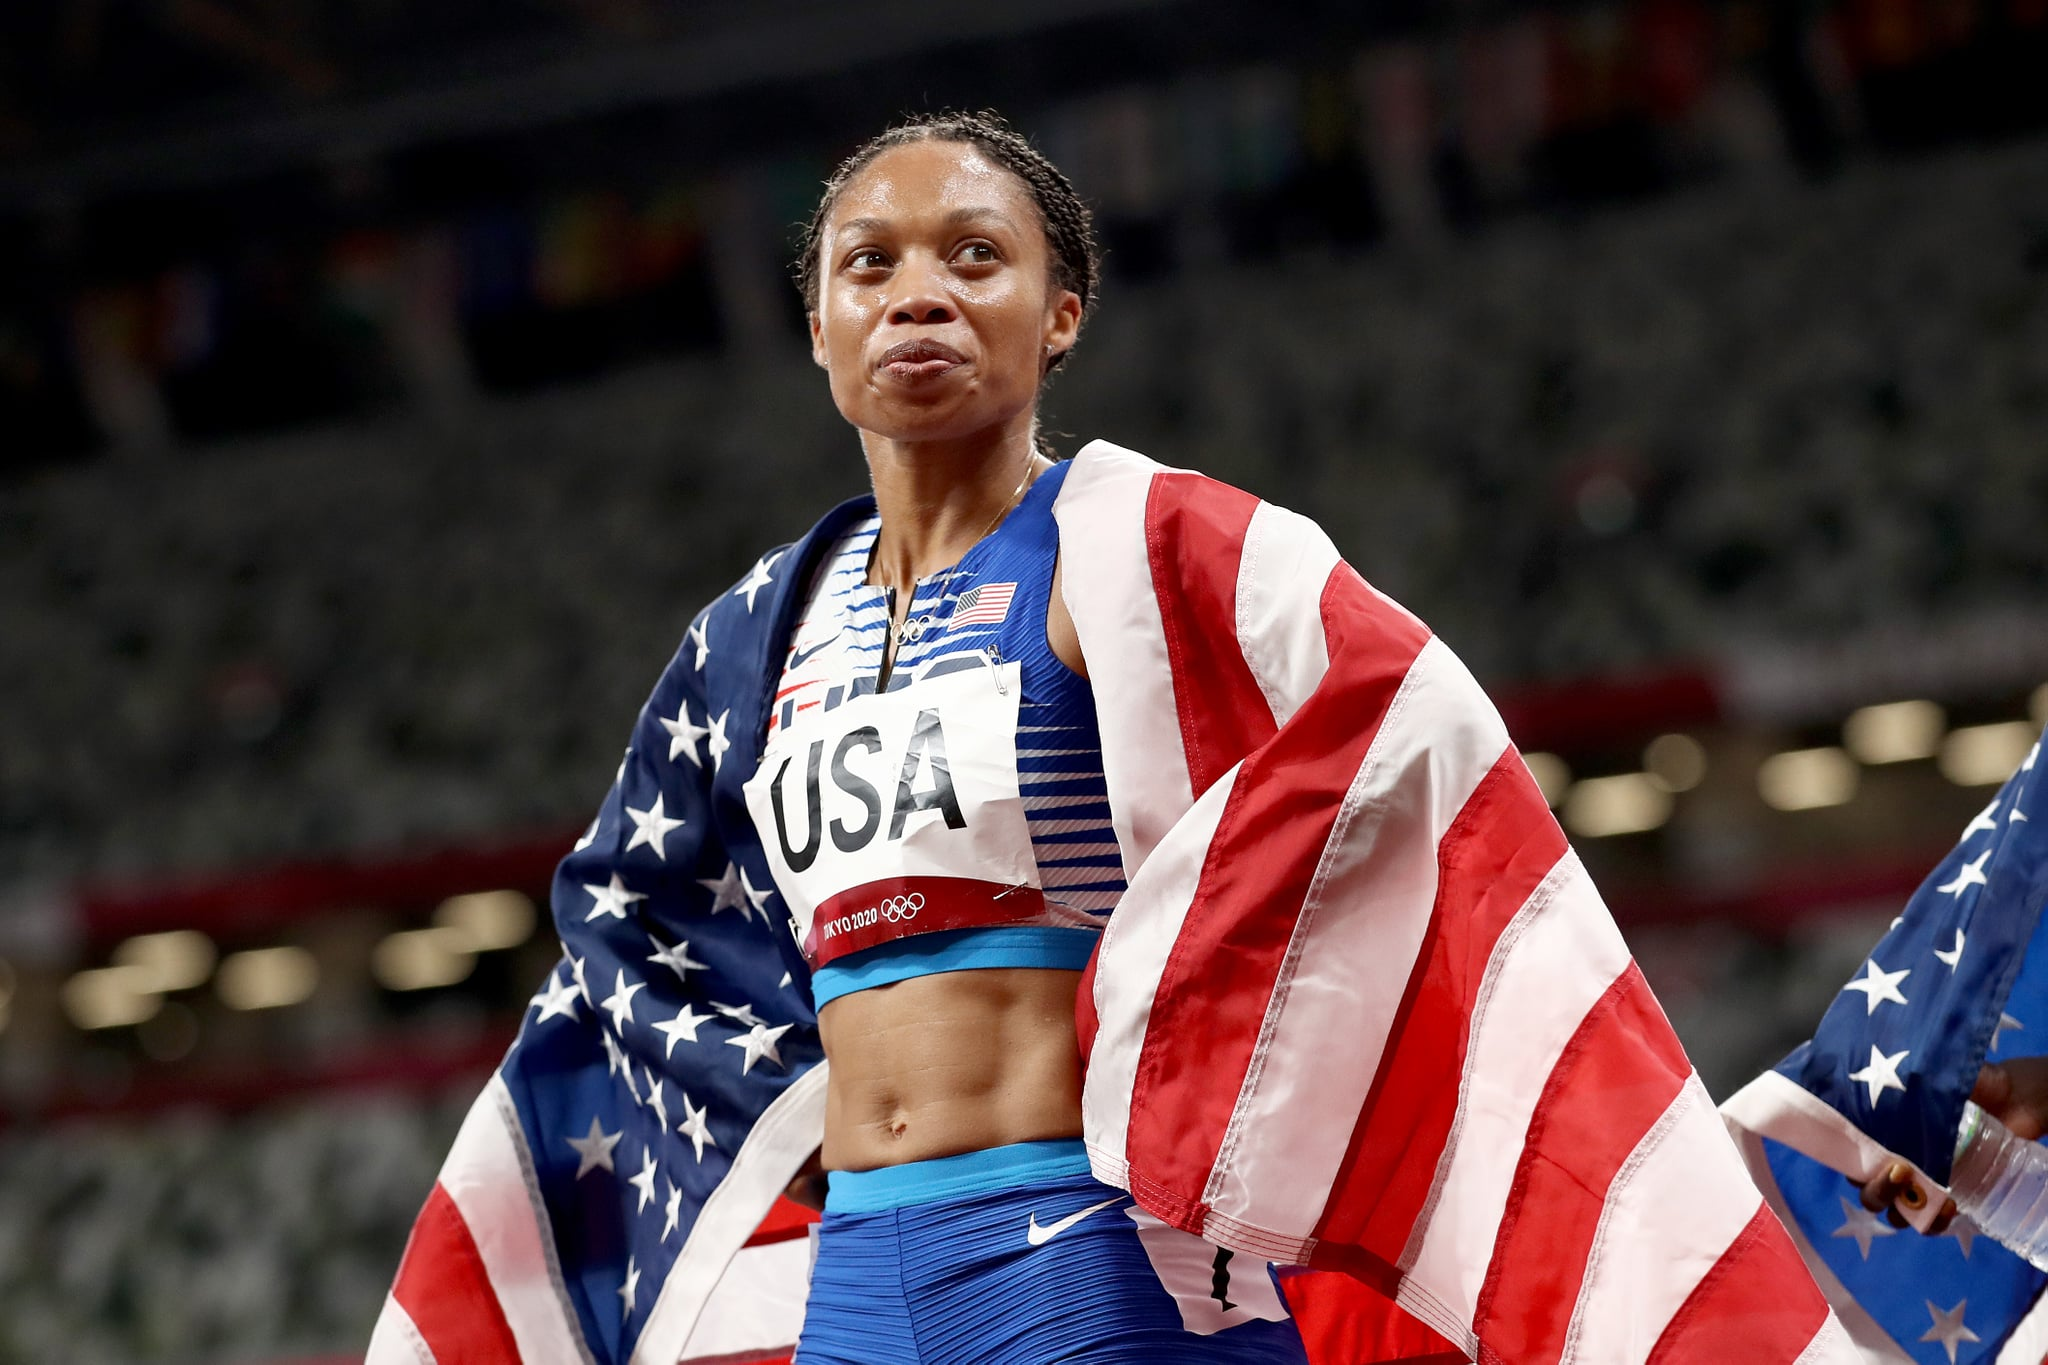 TOKYO, JAPAN - AUGUST 07: Allyson Felix of Team United States reacts after winning the gold medal in the Women's 4 x 400m Relay Final on day fifteen of the Tokyo 2020 Olympic Games at Olympic Stadium on August 07, 2021 in Tokyo, Japan. (Photo by Ryan Pierse/Getty Images)